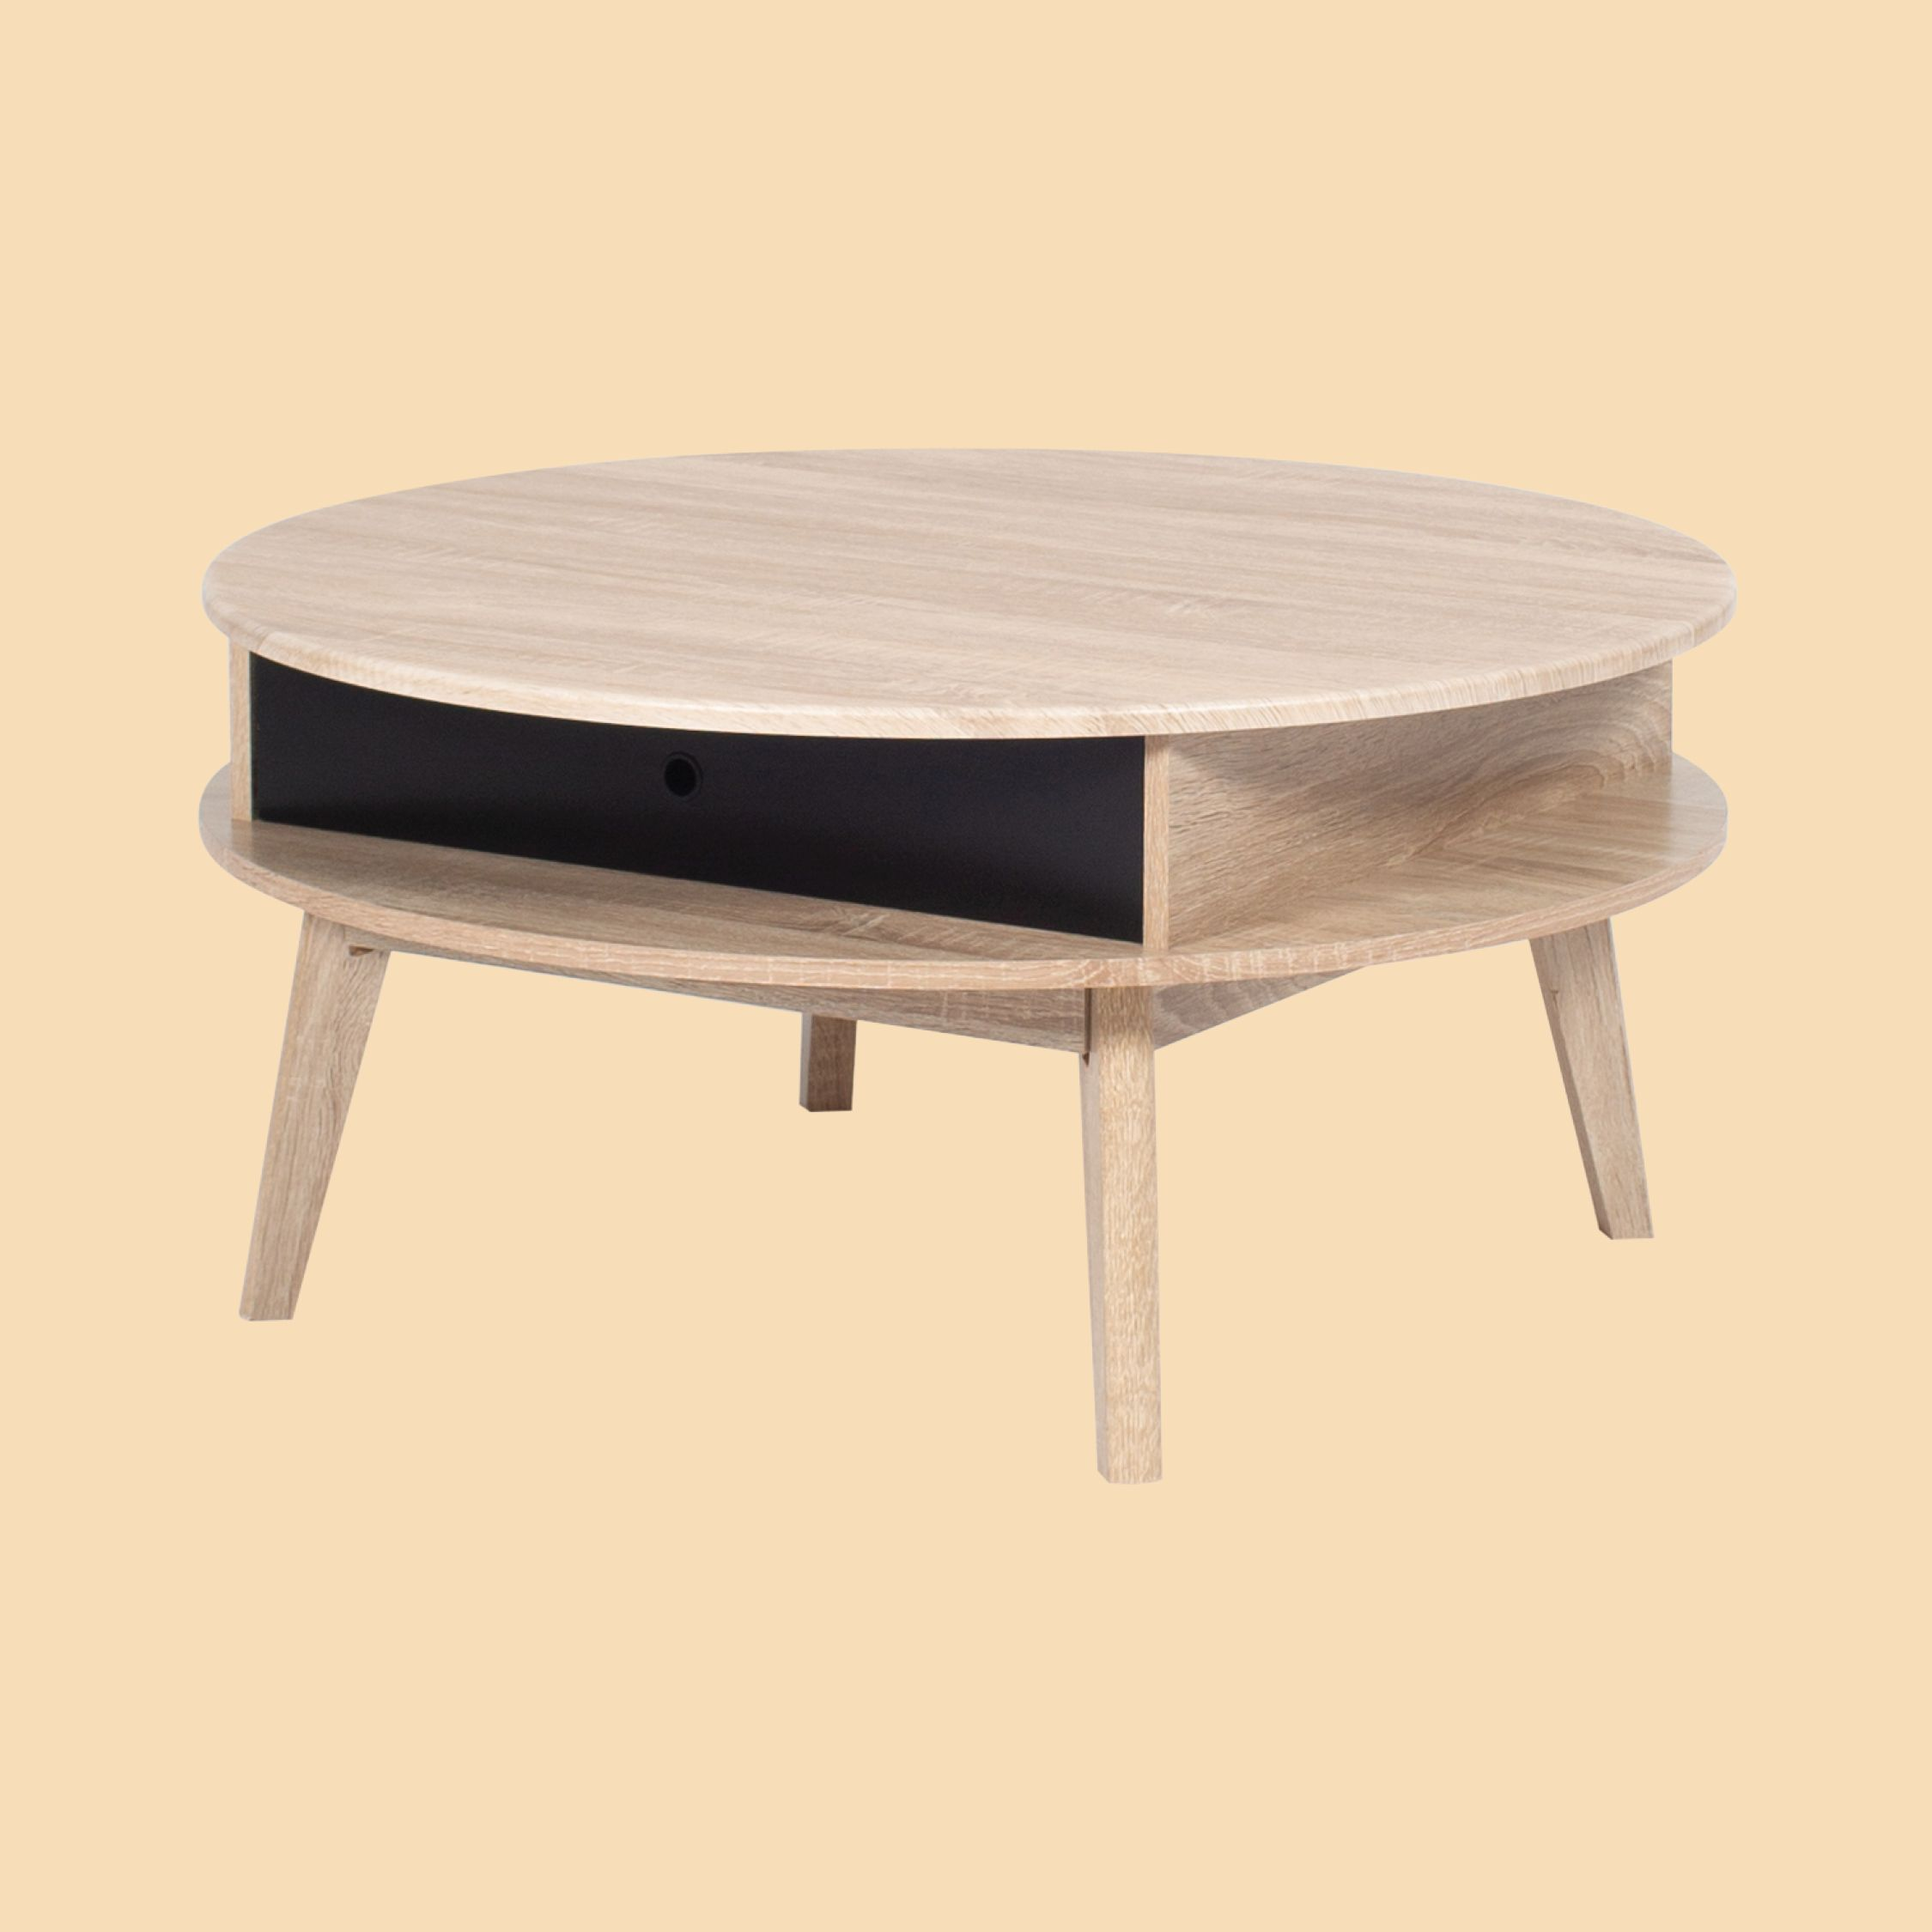 Coco Scandi Coffee Table Coffee Table Wooden Coffee Table Round Wooden Coffee Table [ 2250 x 2250 Pixel ]